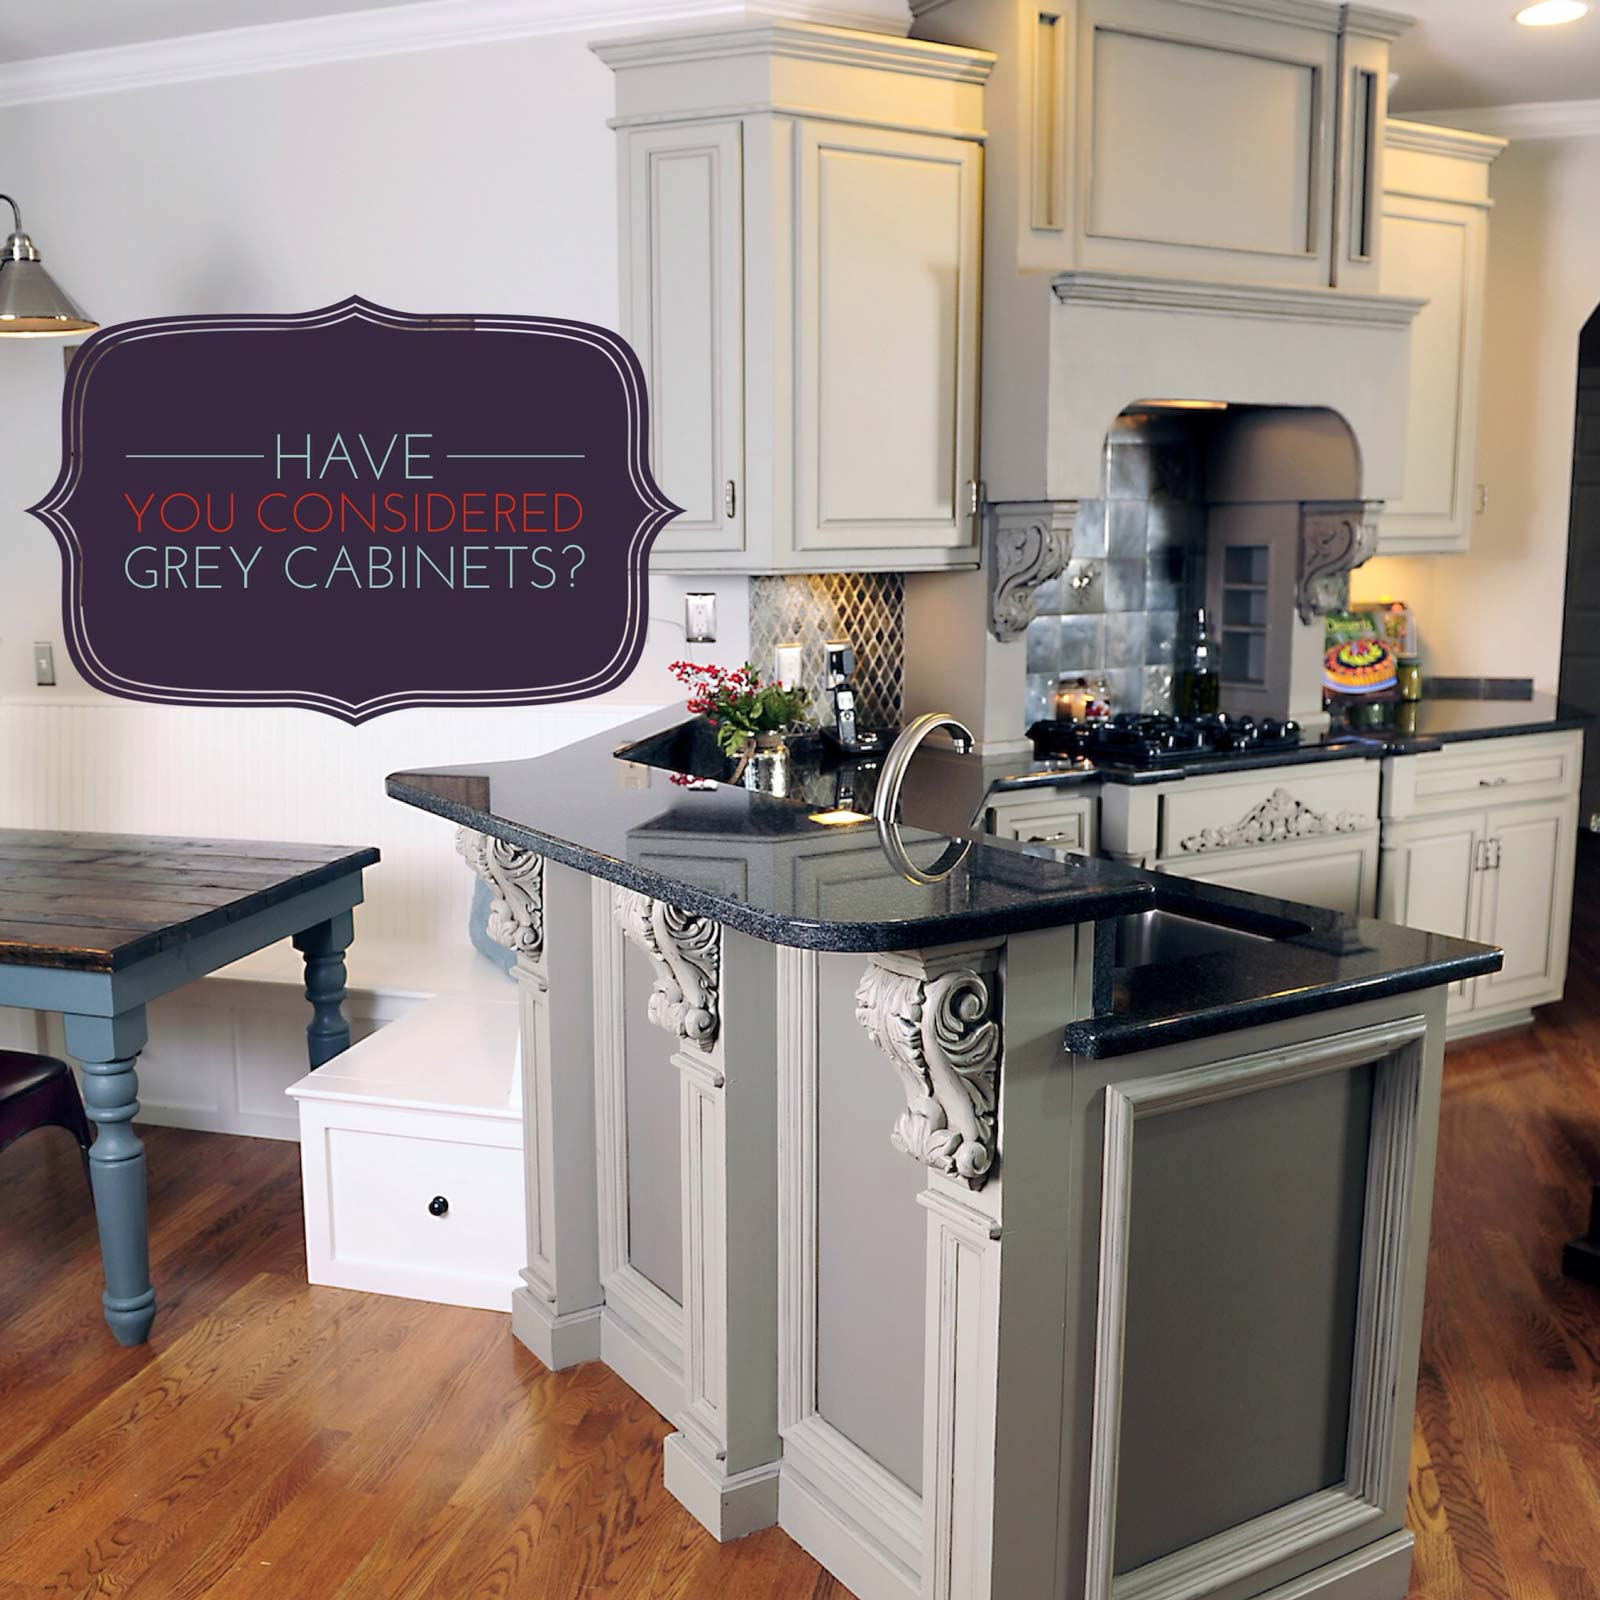 Have You Considered Grey Kitchen Cabinets - Paint colors for grey kitchen cabinets